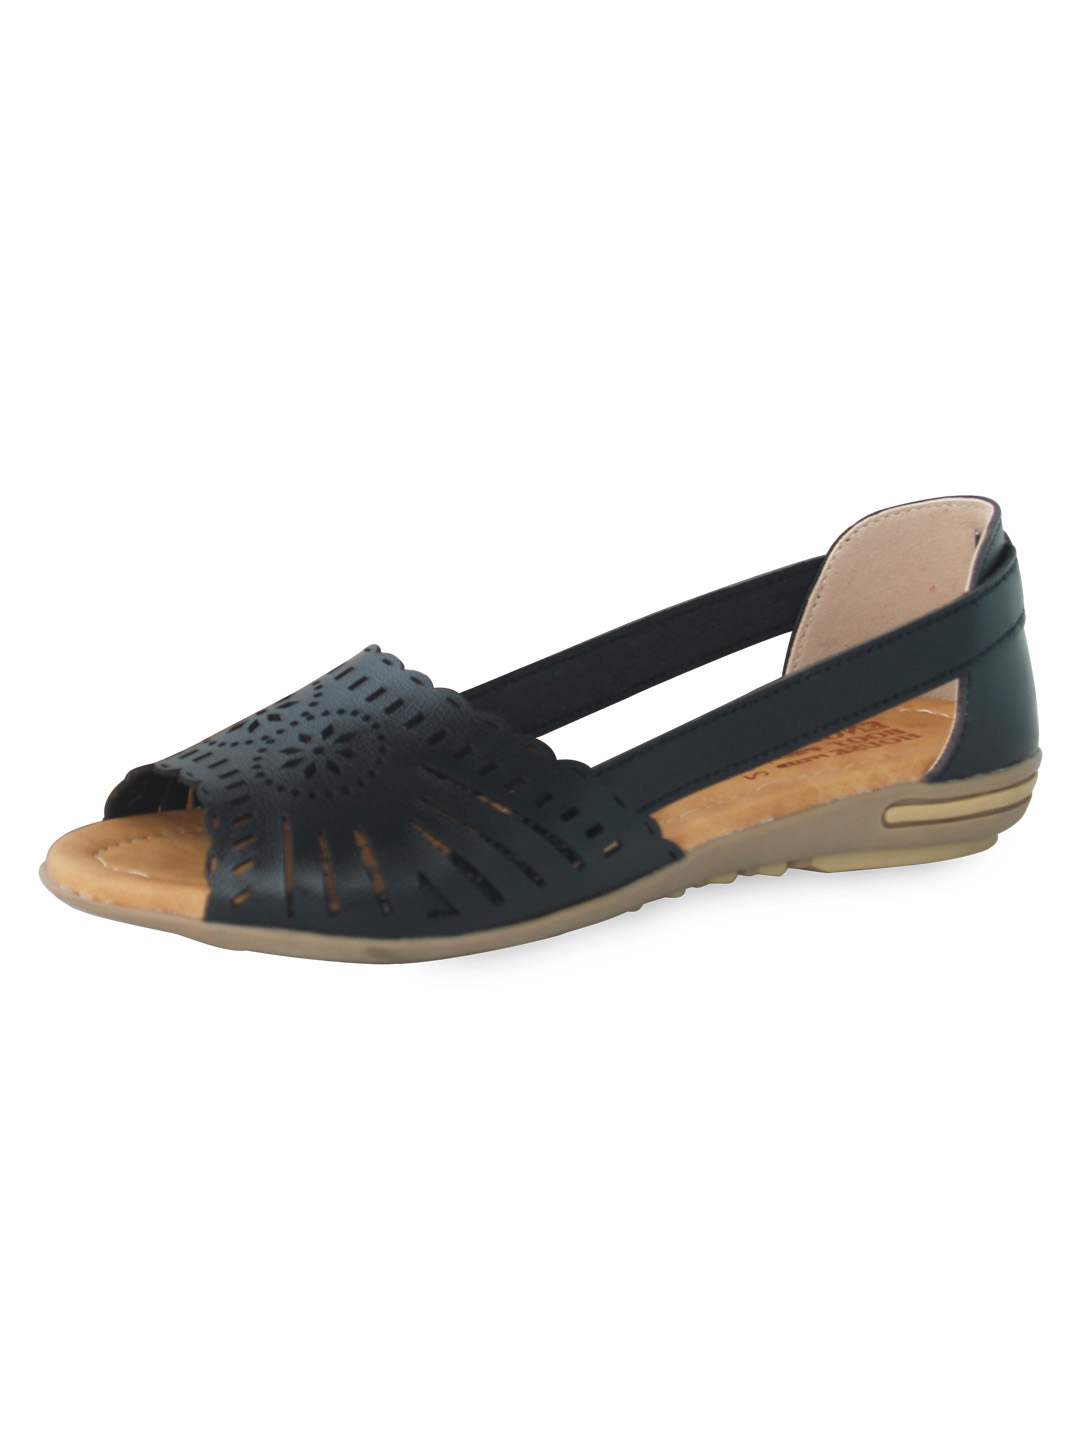 018ae47c25e3 LADIES SANDALS - EBH - Art of Leather